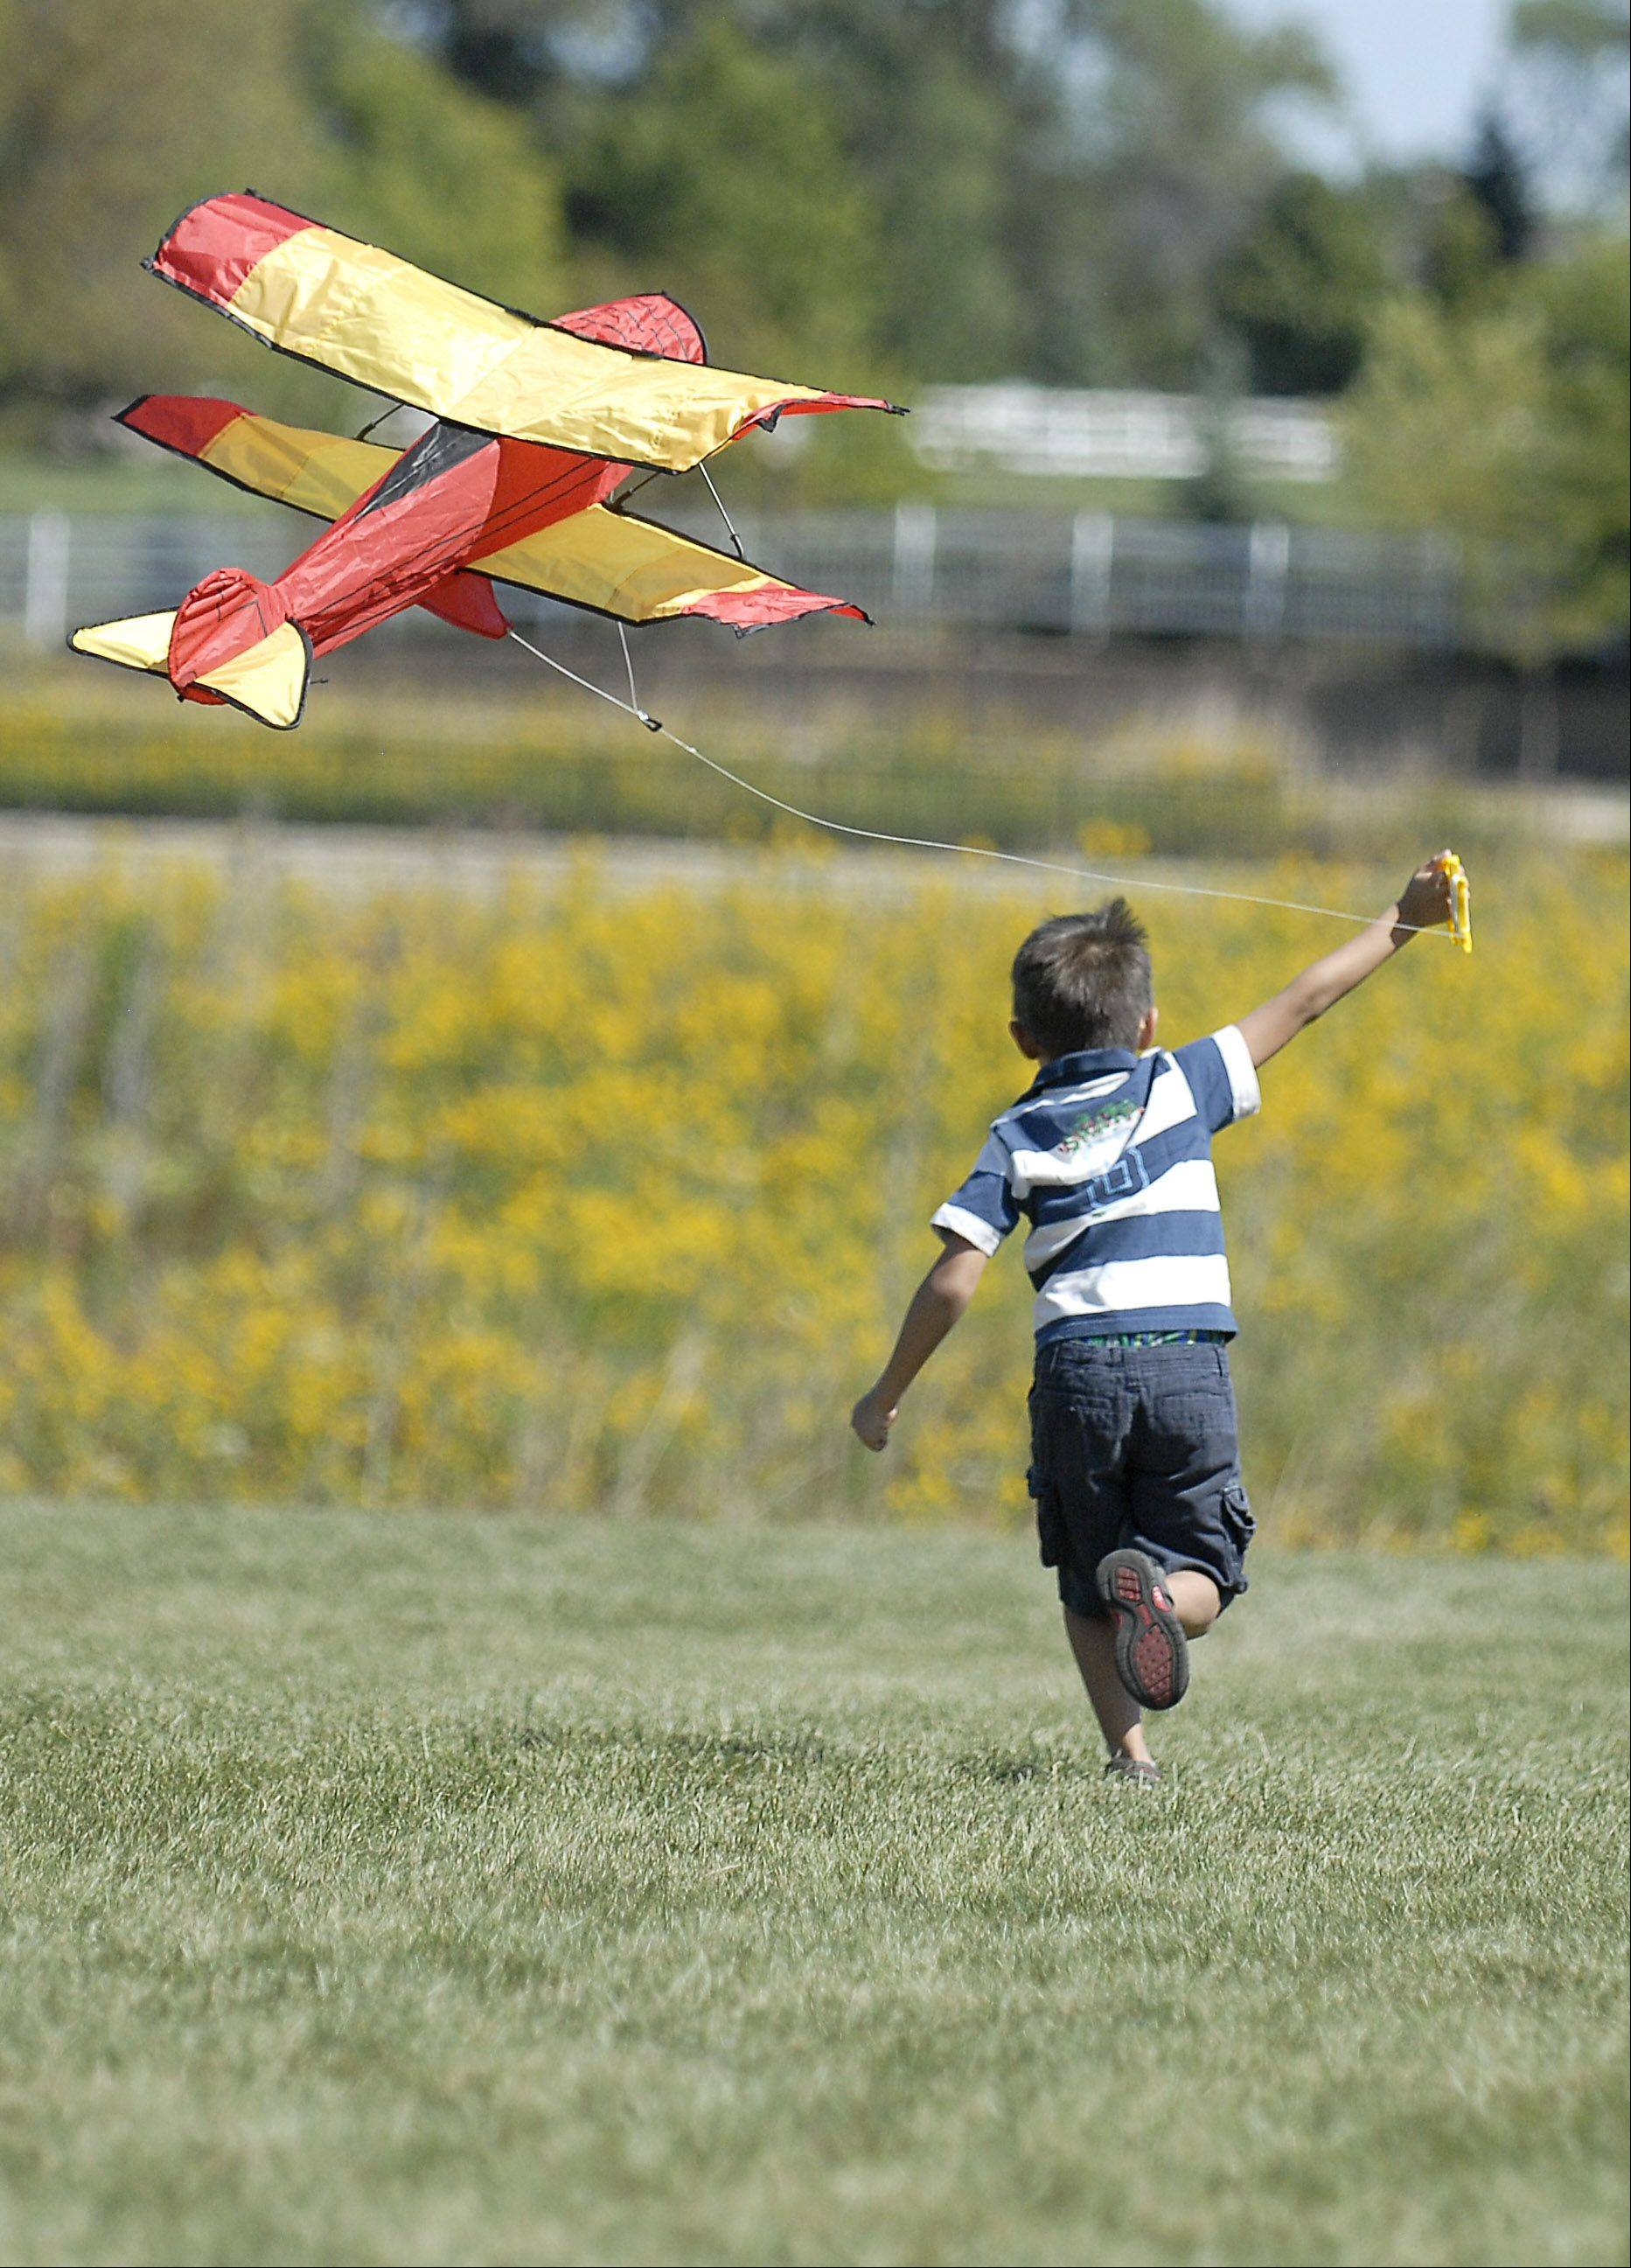 Lucas Oldham, 6, of Geneva has lift off with his biplane kite during Geneva Park District's annual Kite Festival at Peck Farm Park on Saturday, September 15. Lucas attended the event with his father, Michael, and mother, Tania, for the first time.